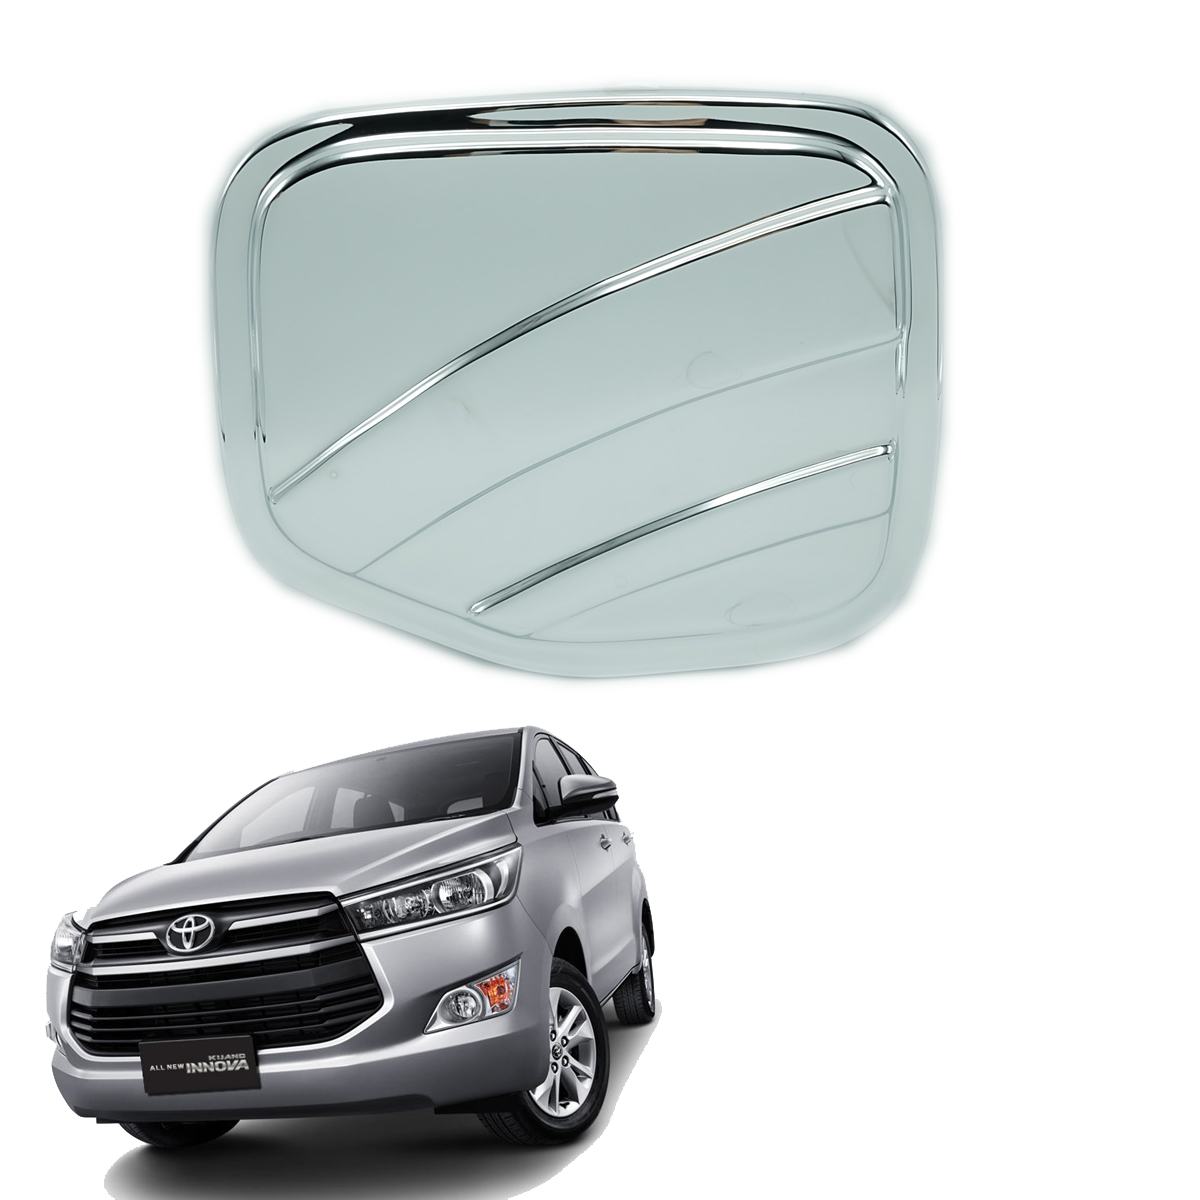 Details about On Toyota Innova Crysta 4 Door 2017 + Fuel Oil Tank Cap Cover Chrome Carbon 1 Pc